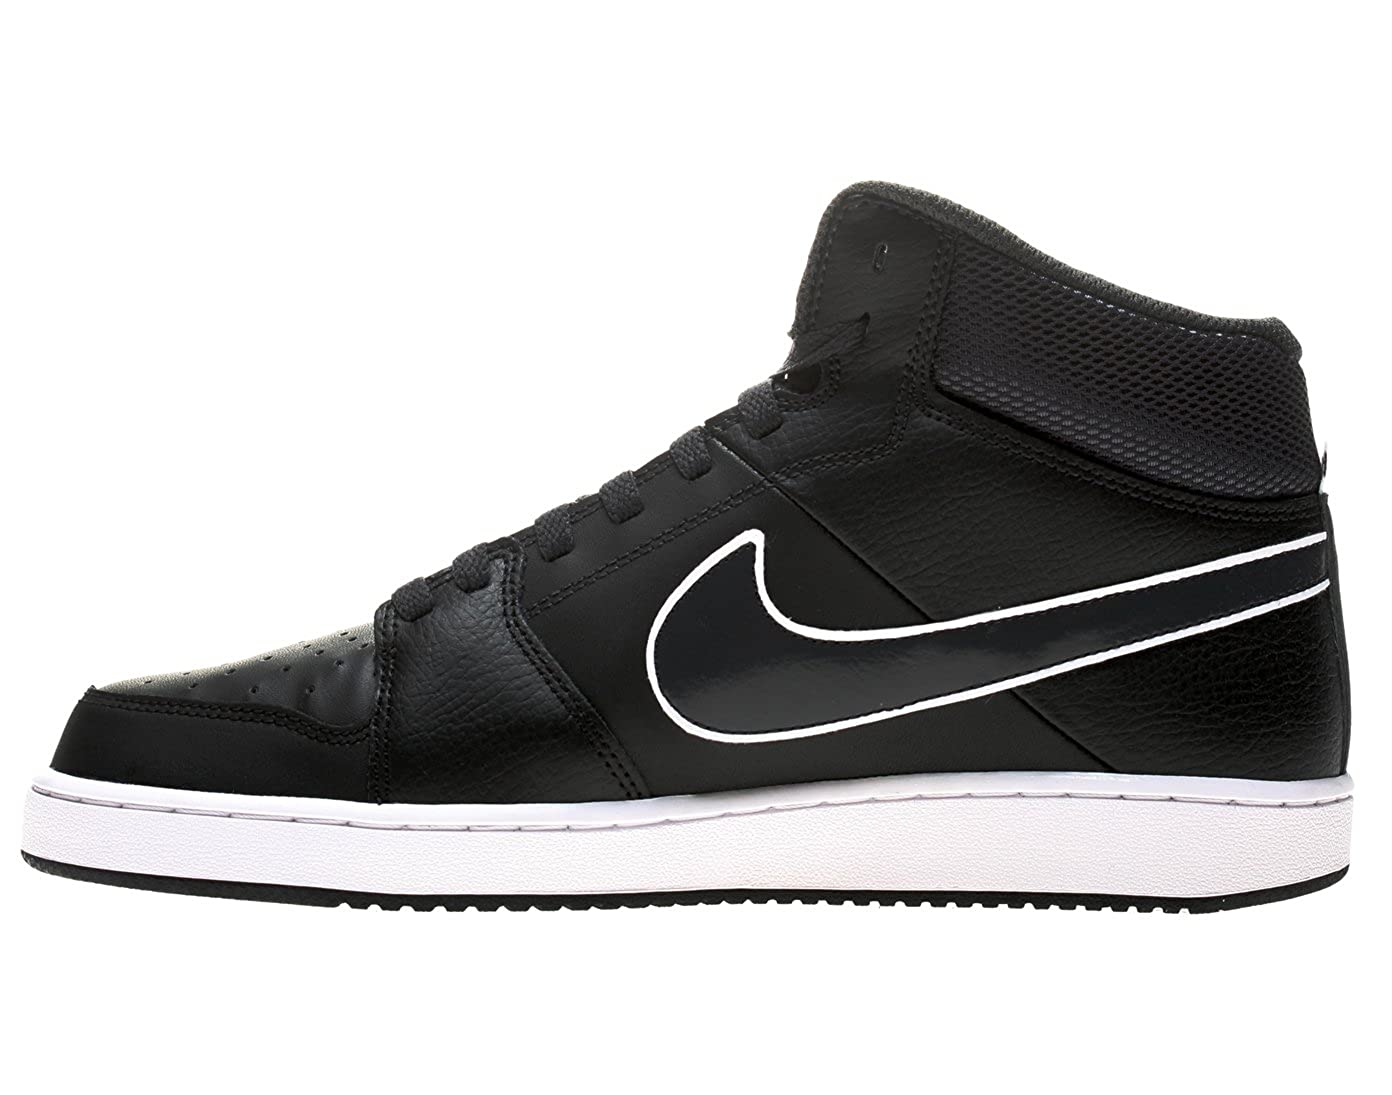 promo code ec47a 5225f Nike Backboard 2 mid 487656011, Baskets Mode Homme - taille 47.5   Amazon.fr  Chaussures et Sacs